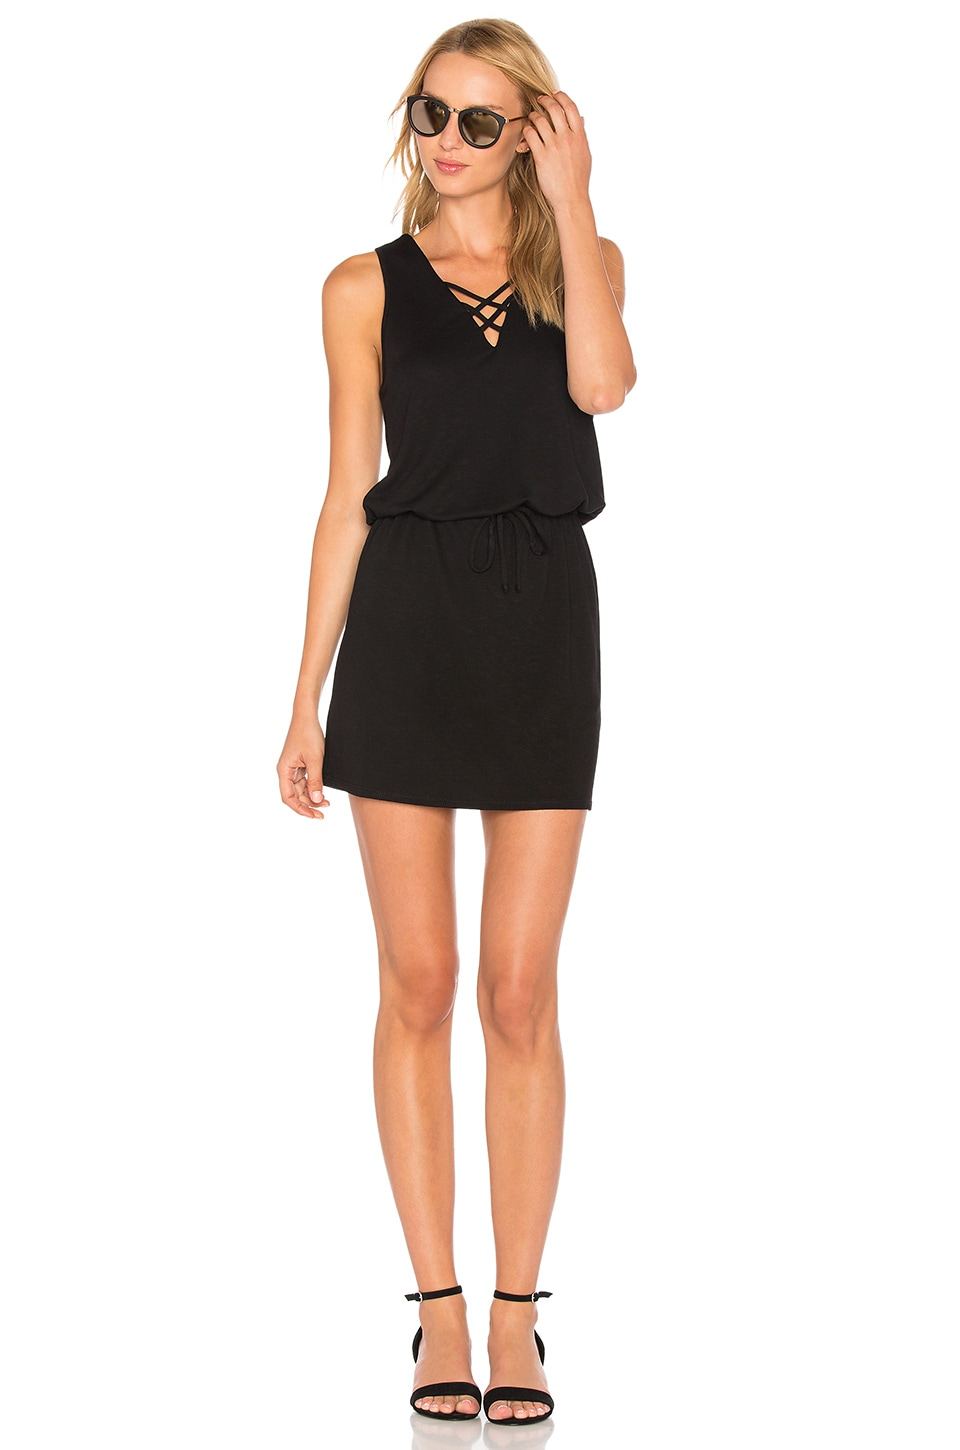 Cross Strap Dress by Lanston